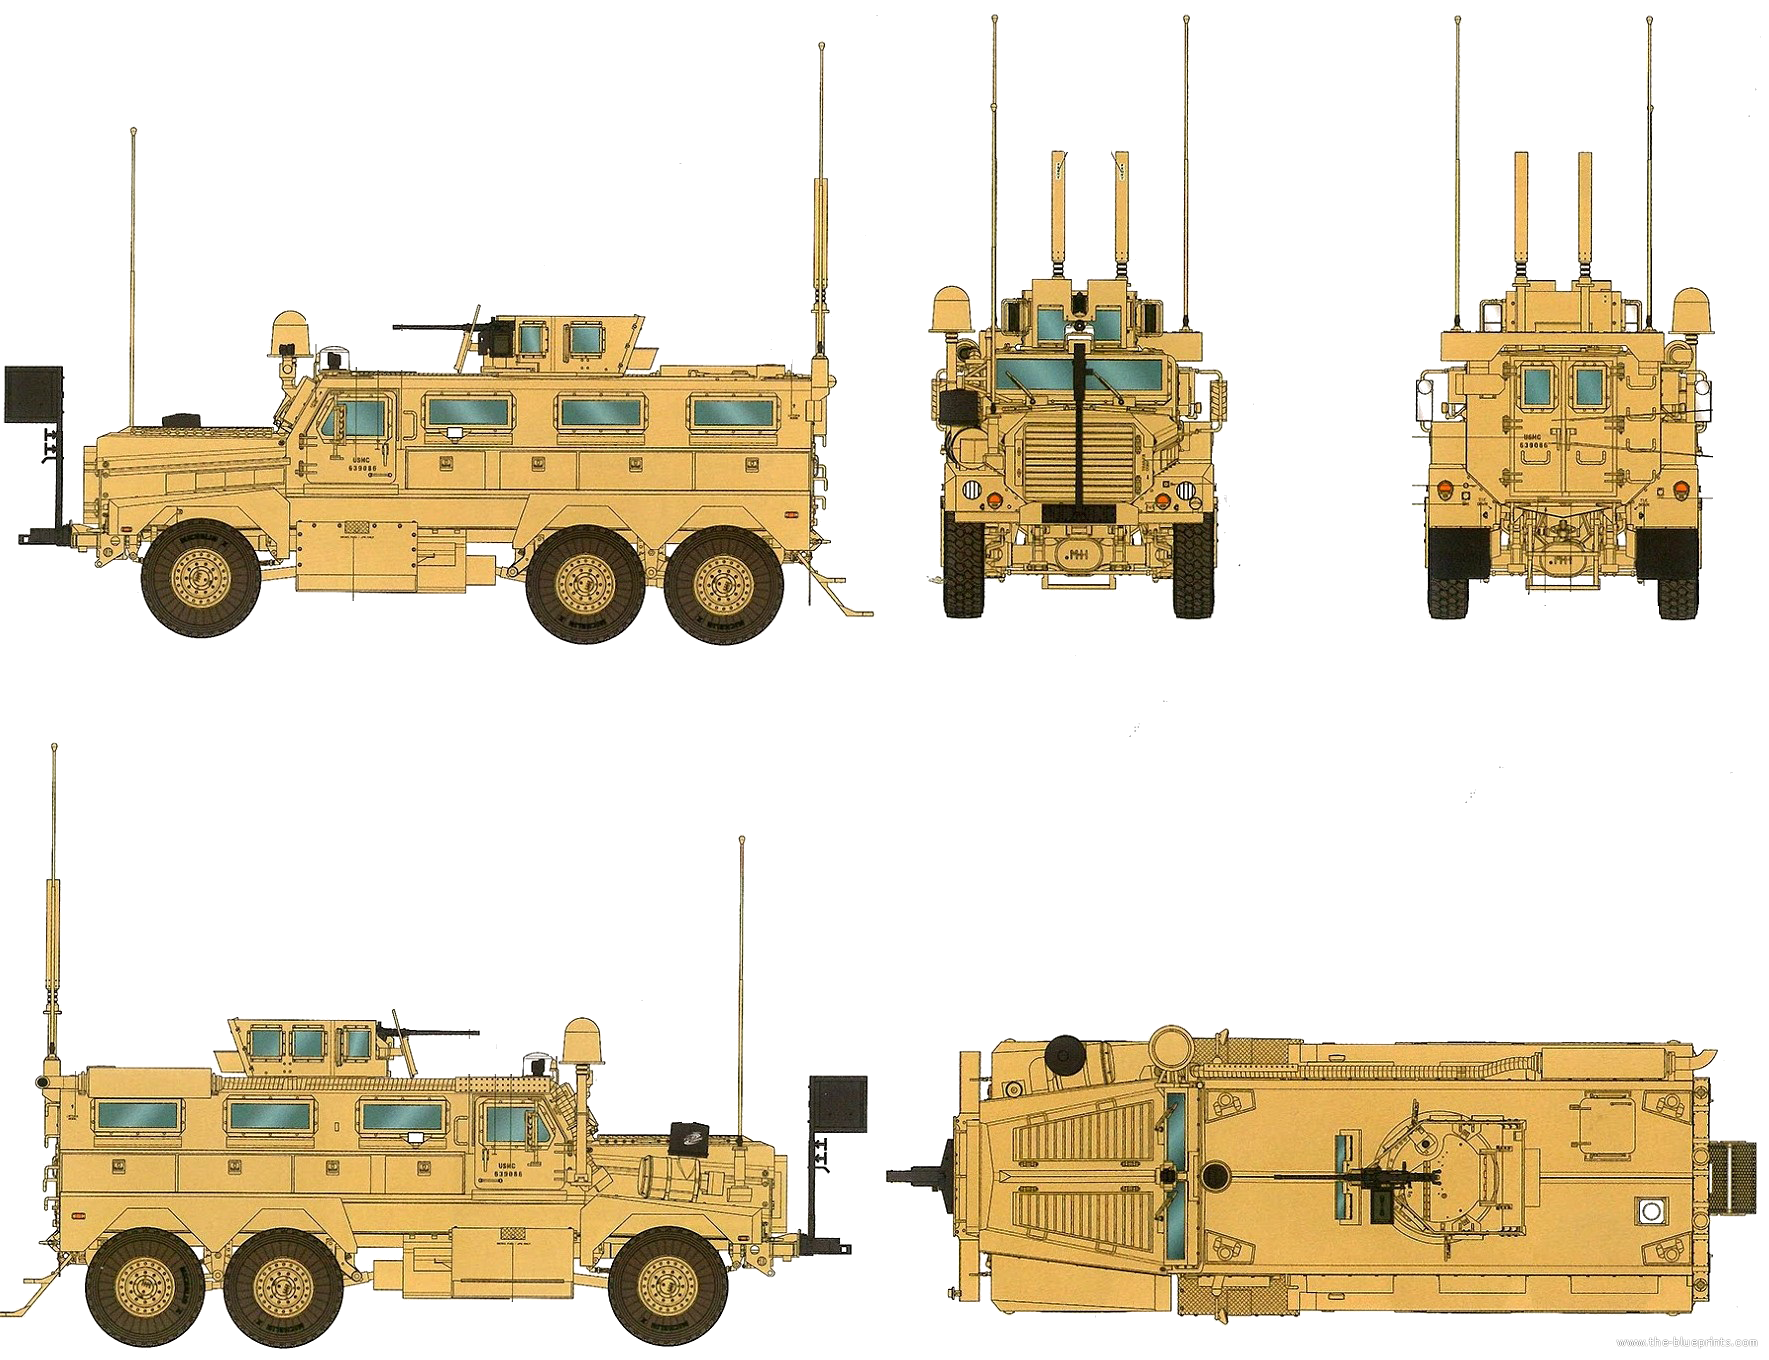 Military Tanks For Sale >> Blueprints > Tanks > Tanks C > Cougar 6x6 MRAP